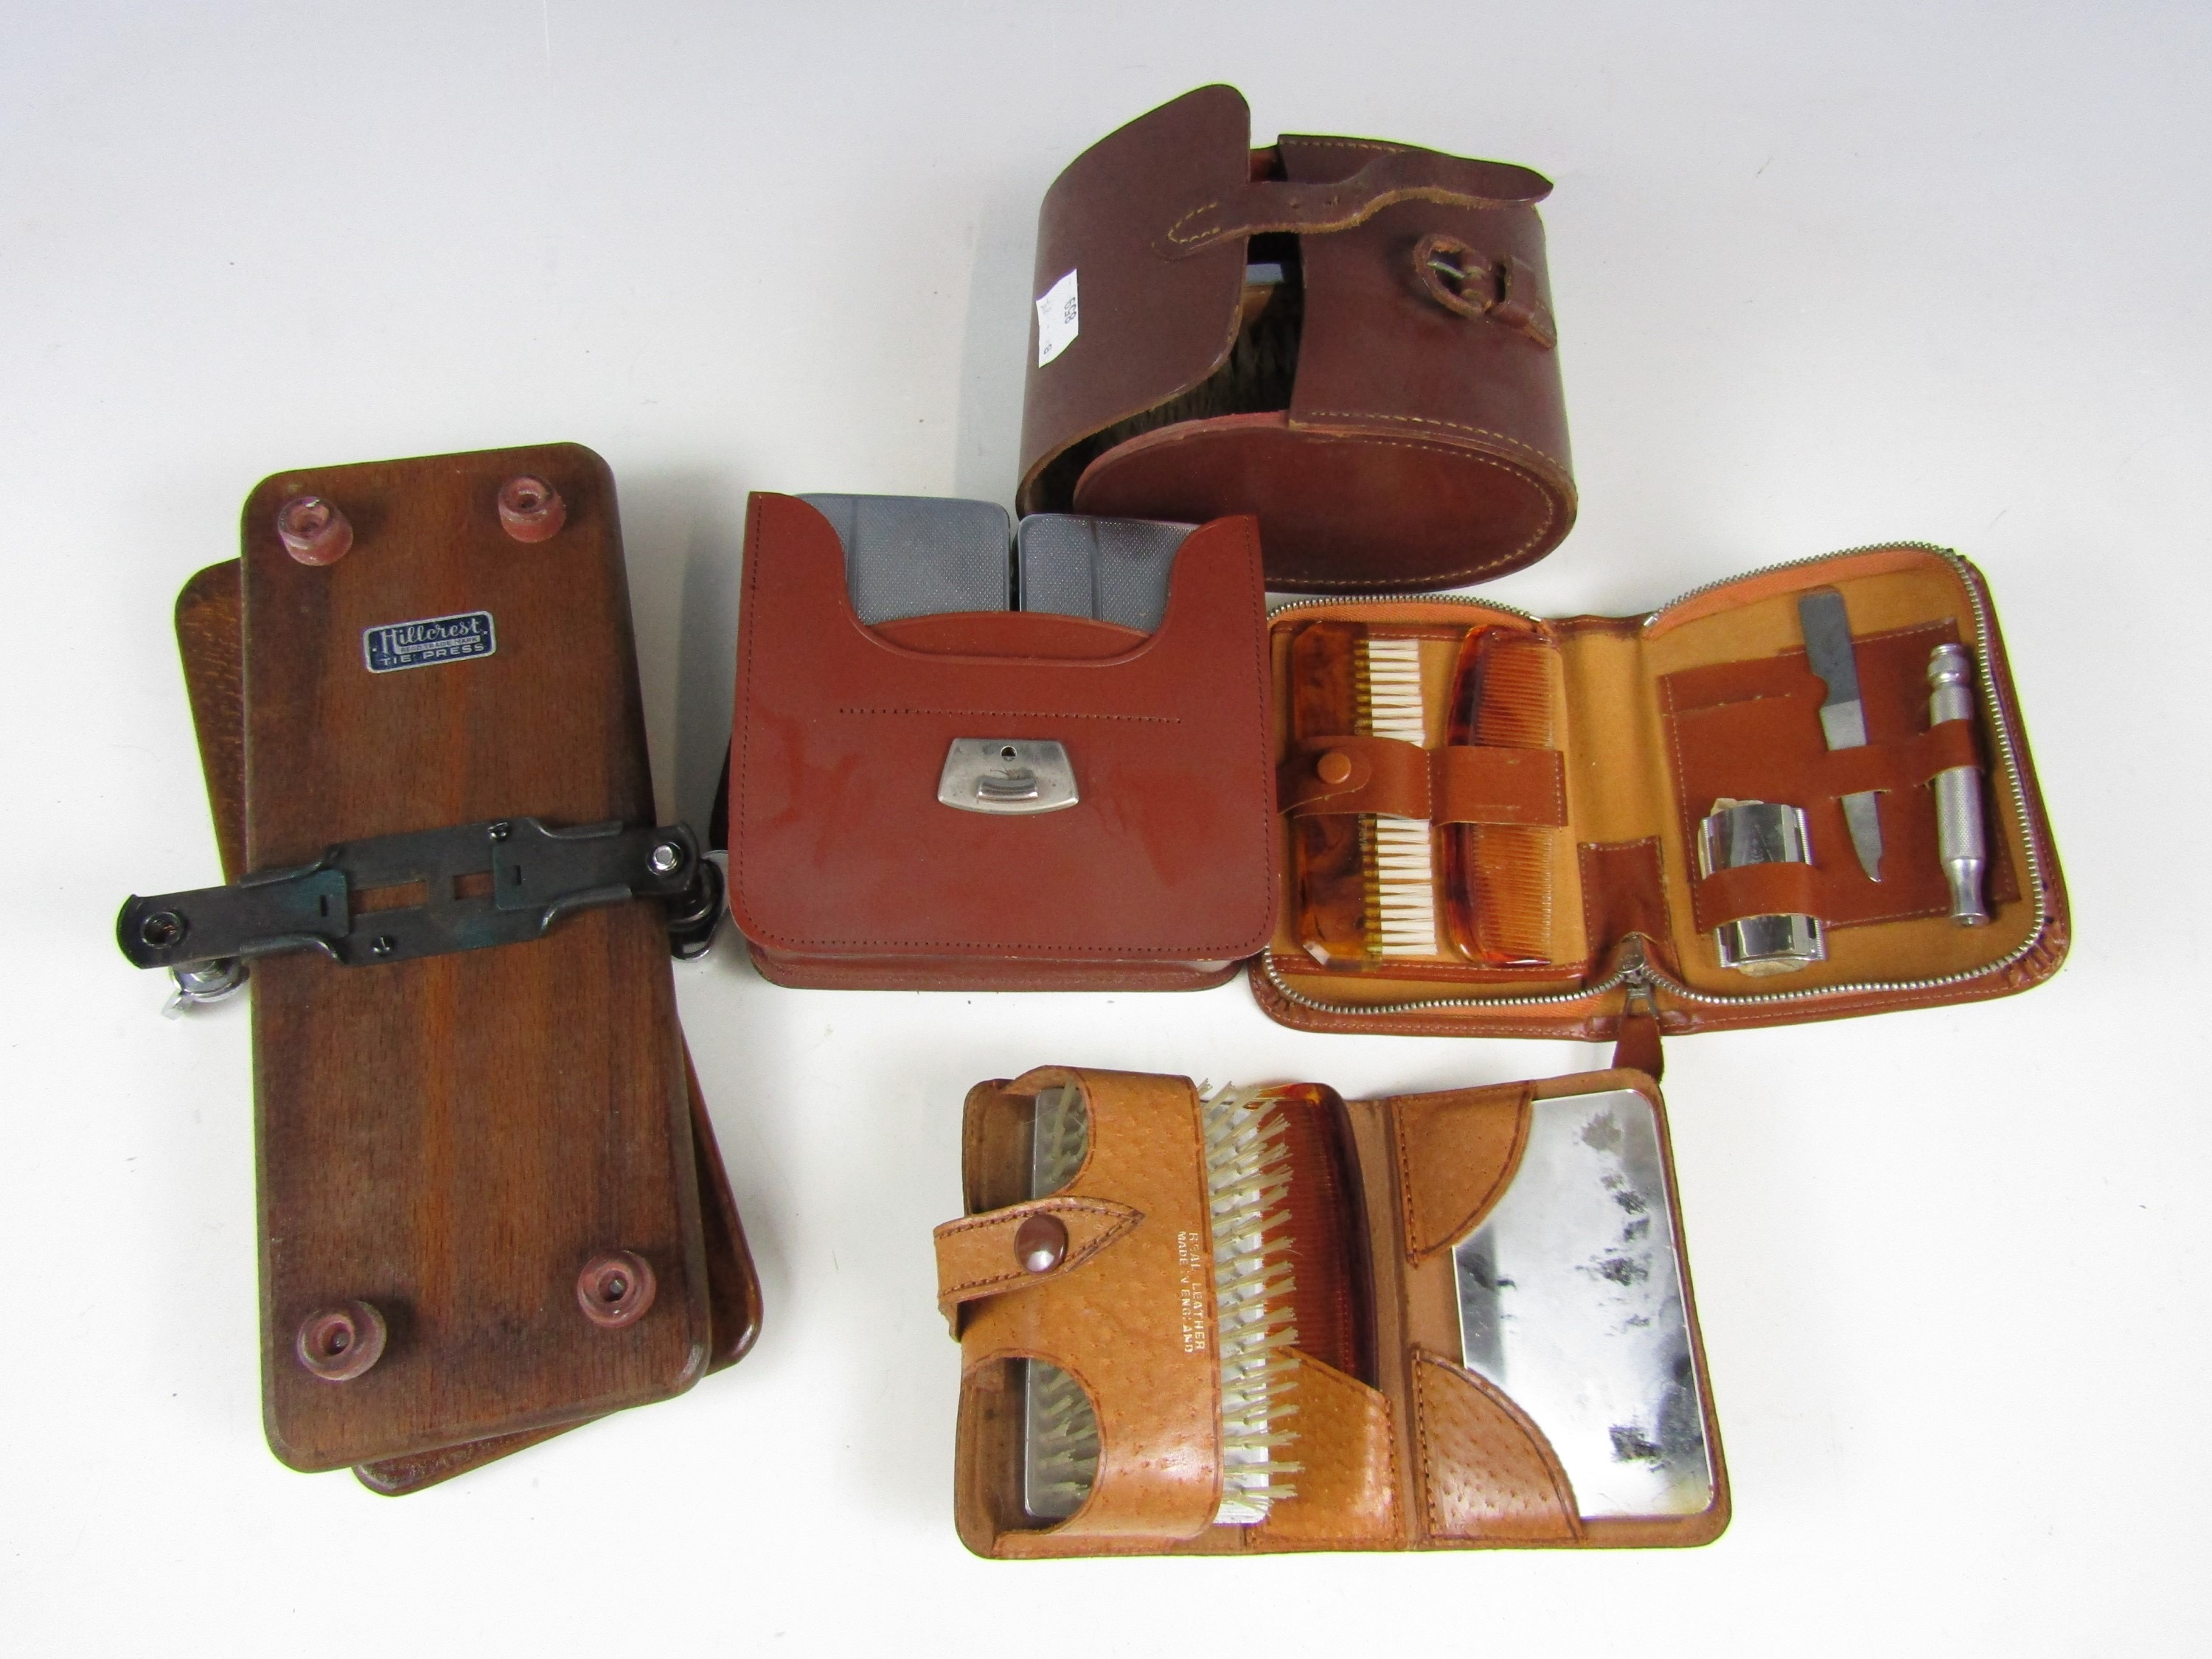 Lot 45 - A quantity of 1930s-1940's gentlemen's leather-cased grooming sets and a tie press